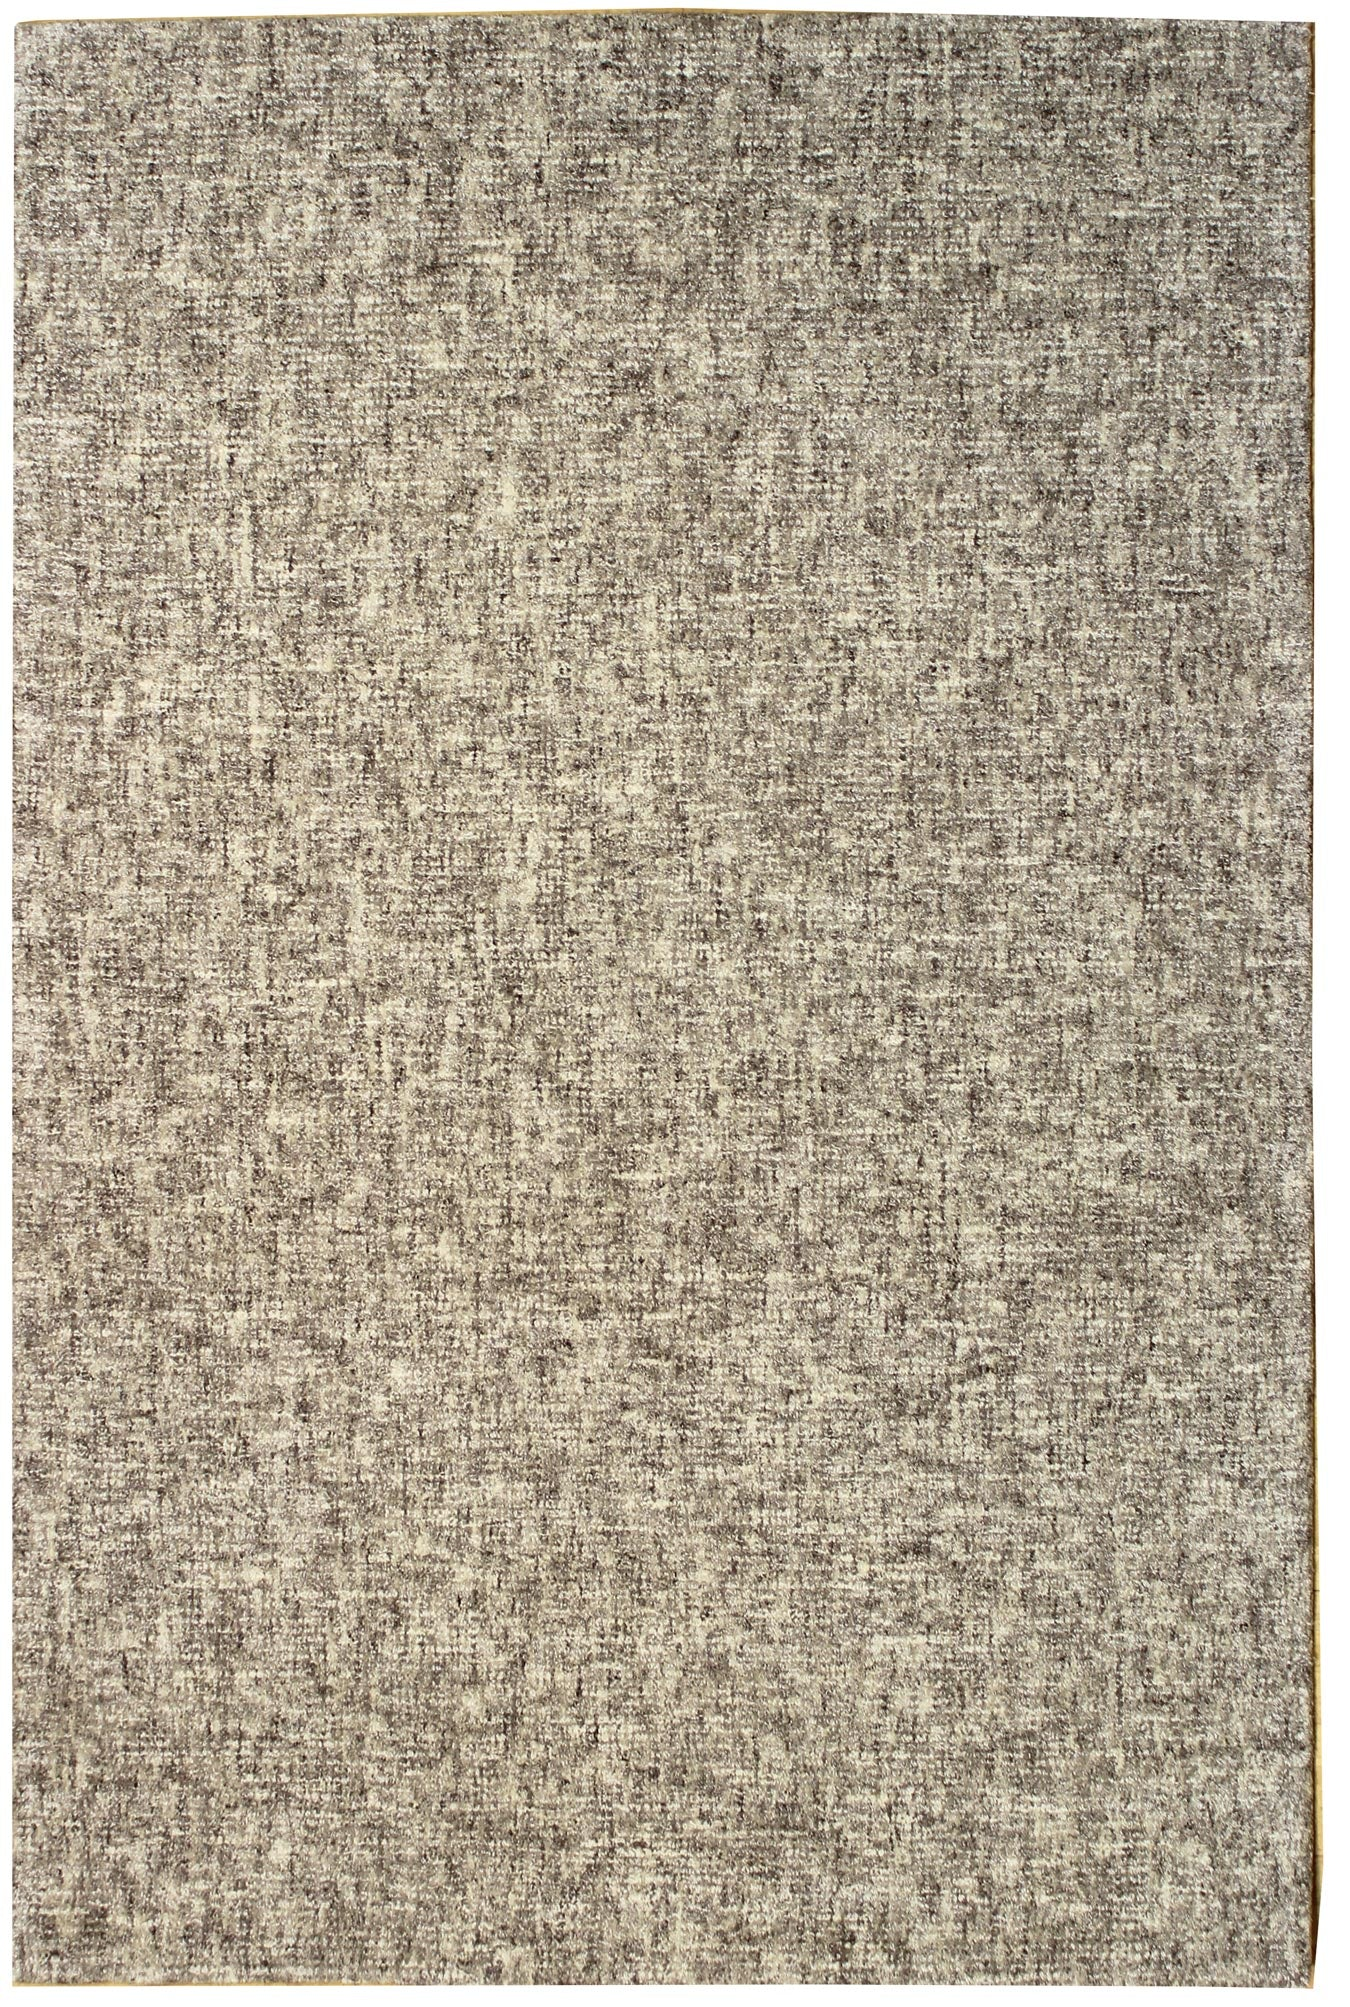 Textures Tufted Contemporary Rug